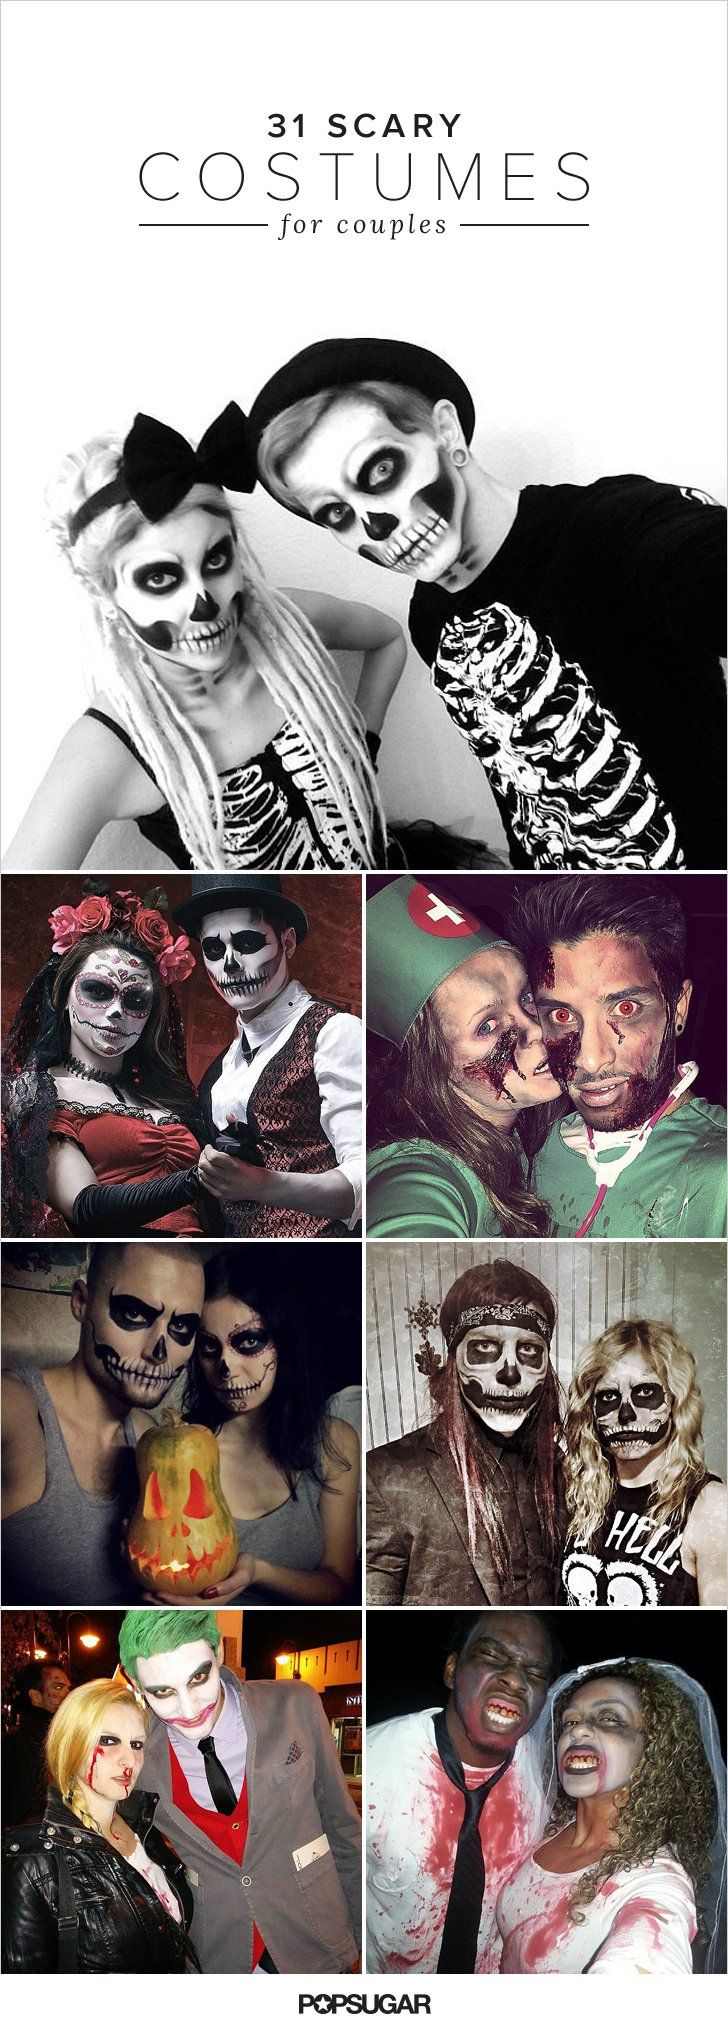 17 best ideas about scary halloween costumes on pinterest - Maquillage halloween couple ...